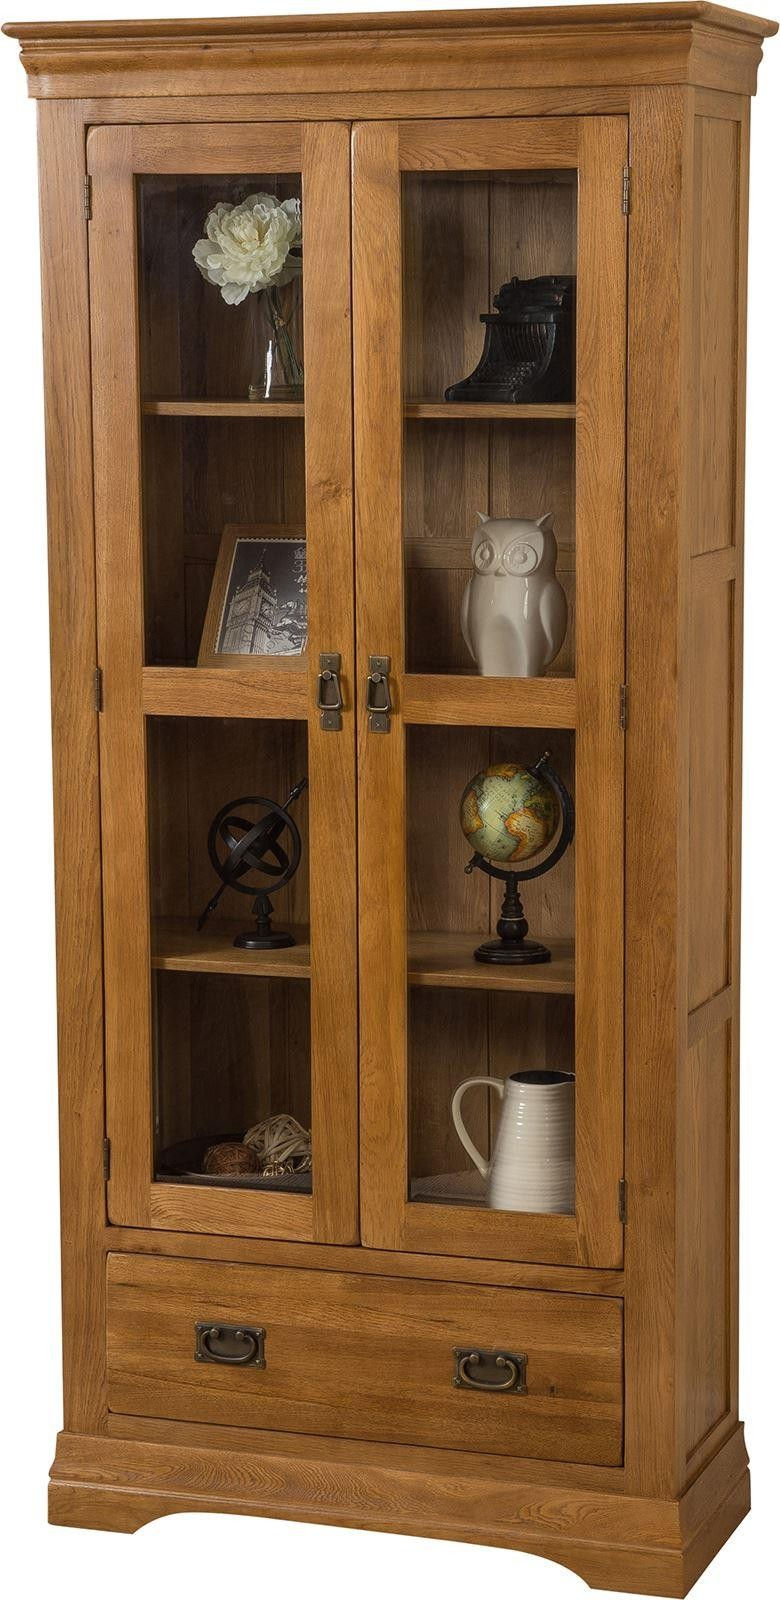 French Chateau Rustic Solid Oak Display Cabinet